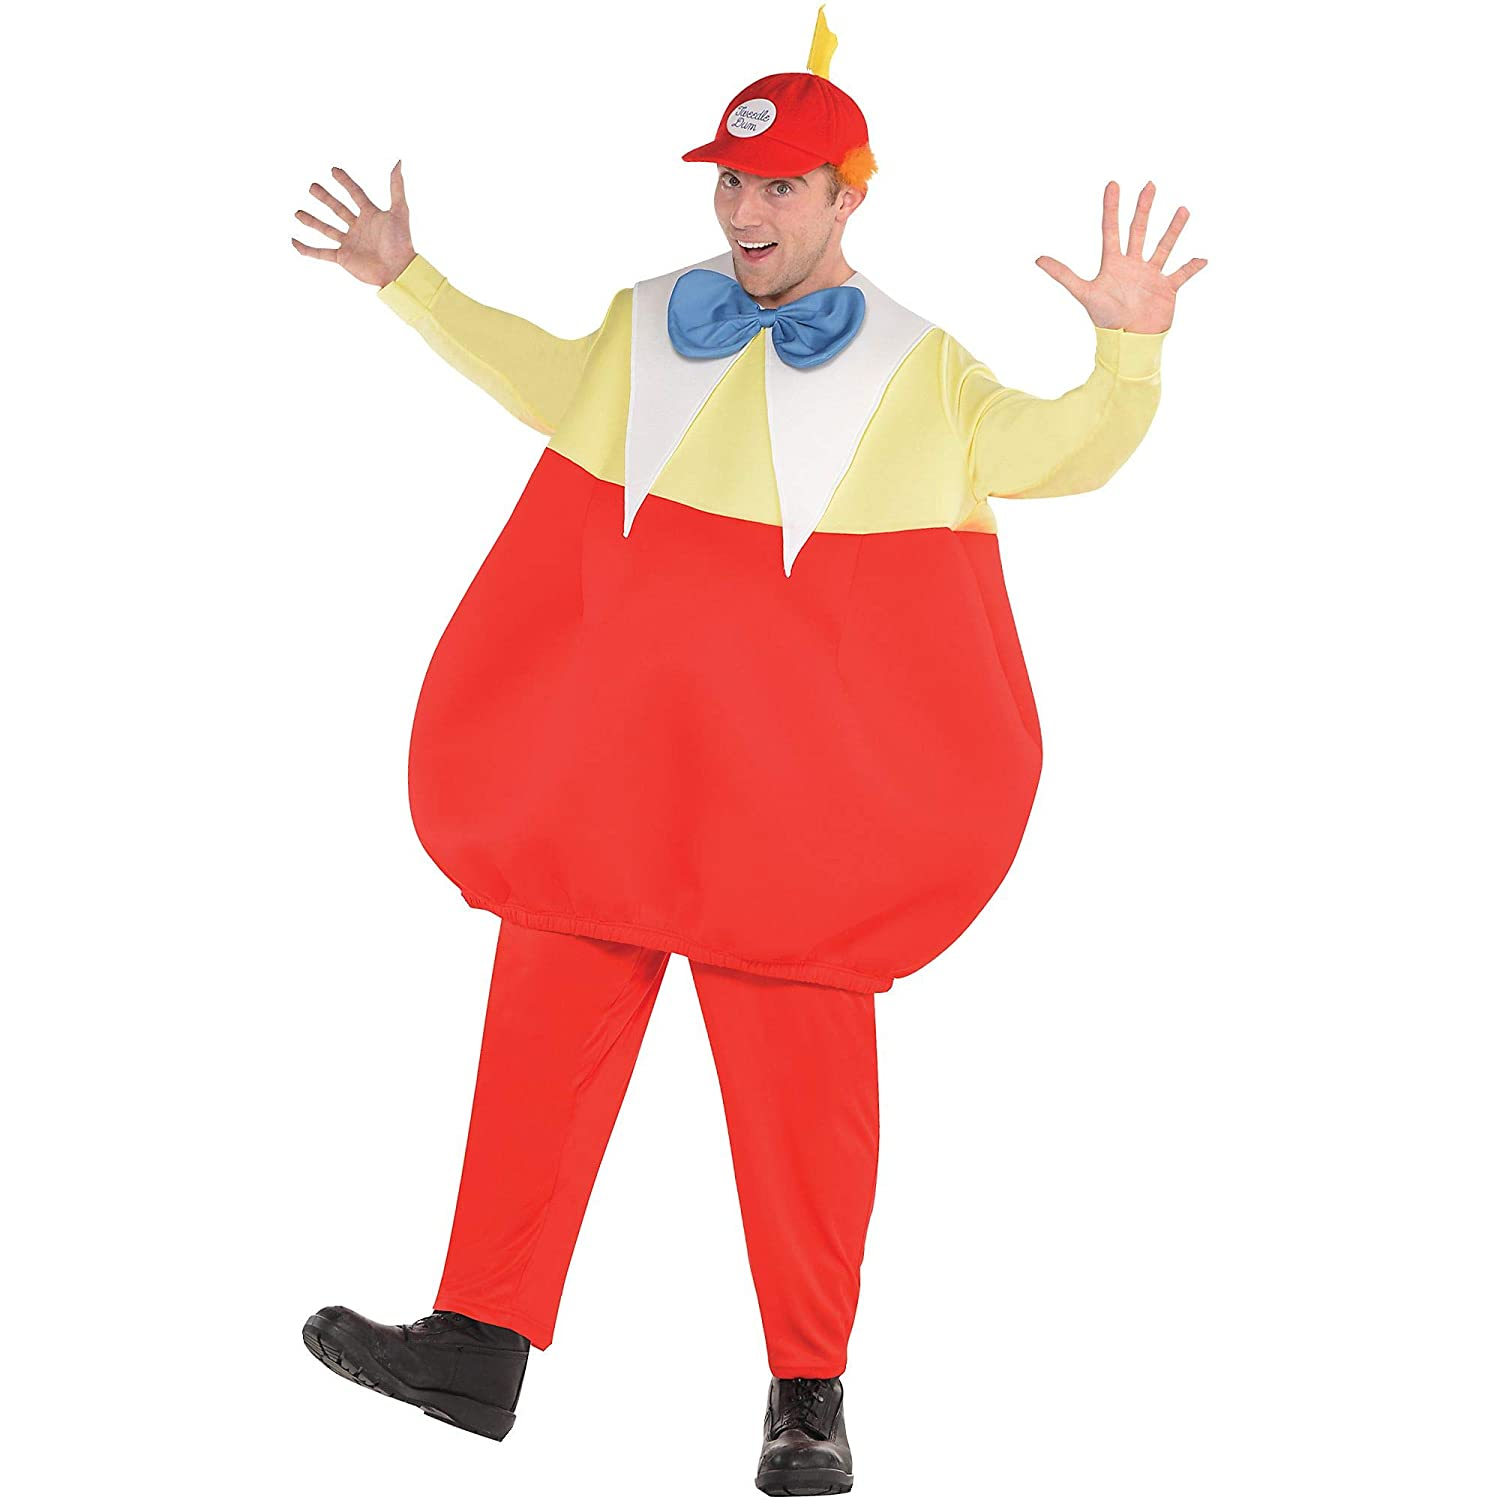 SUIT YOURSELF Tweedledee \u0026 Tweedledum Halloween Costume for Men, Alice in  Wonderland, Plus Size, with Accessories